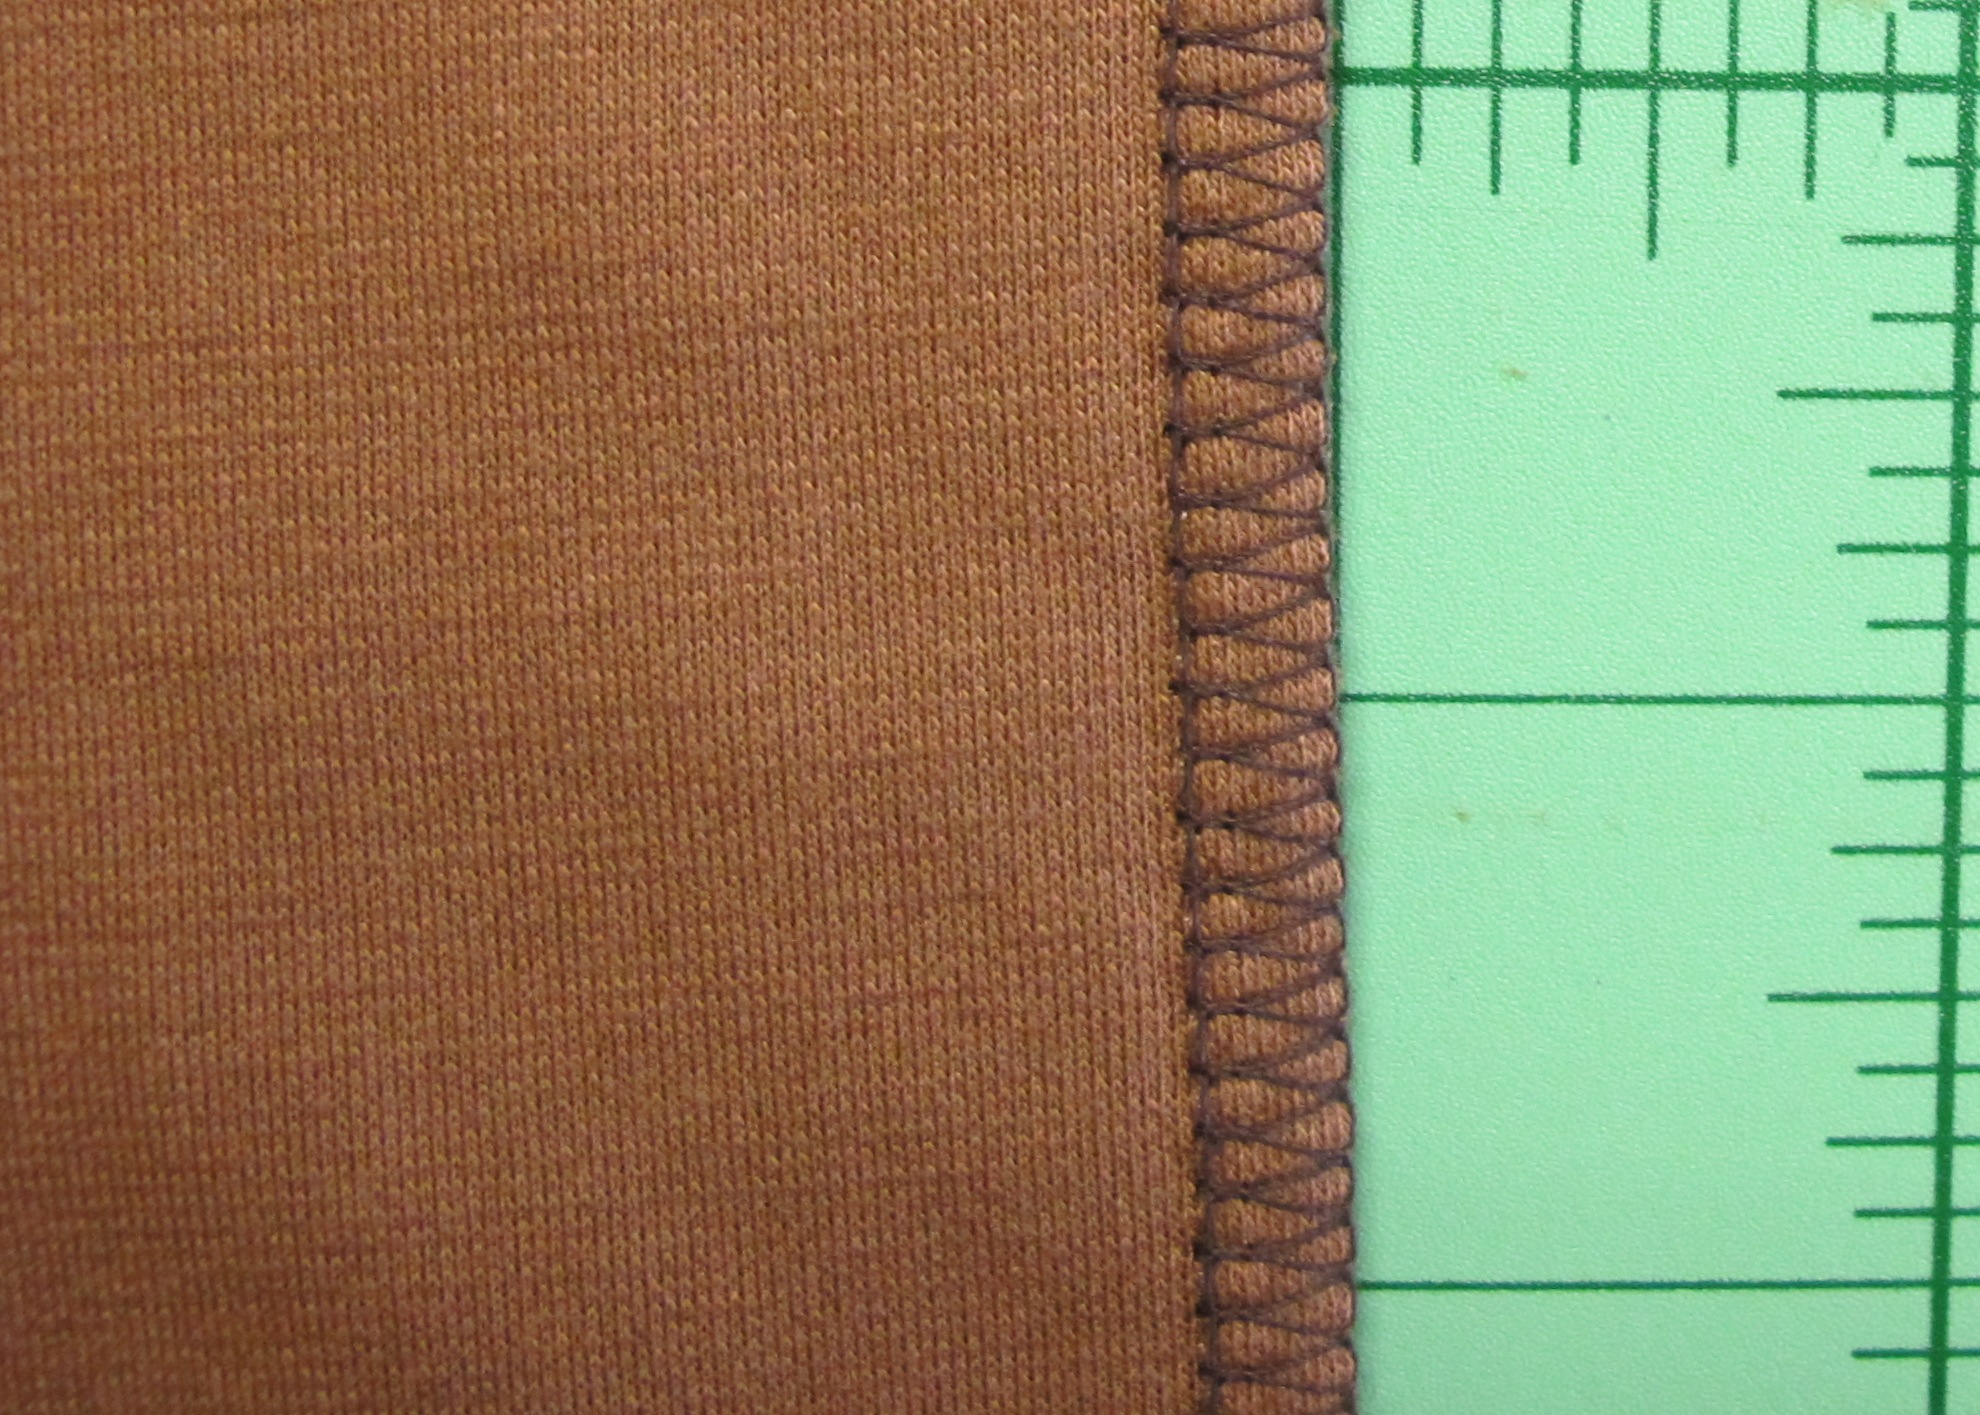 Nancy Zieman's Top 10 Knit Sewing Tips at the NZP Blog nancyzieman.com/blog